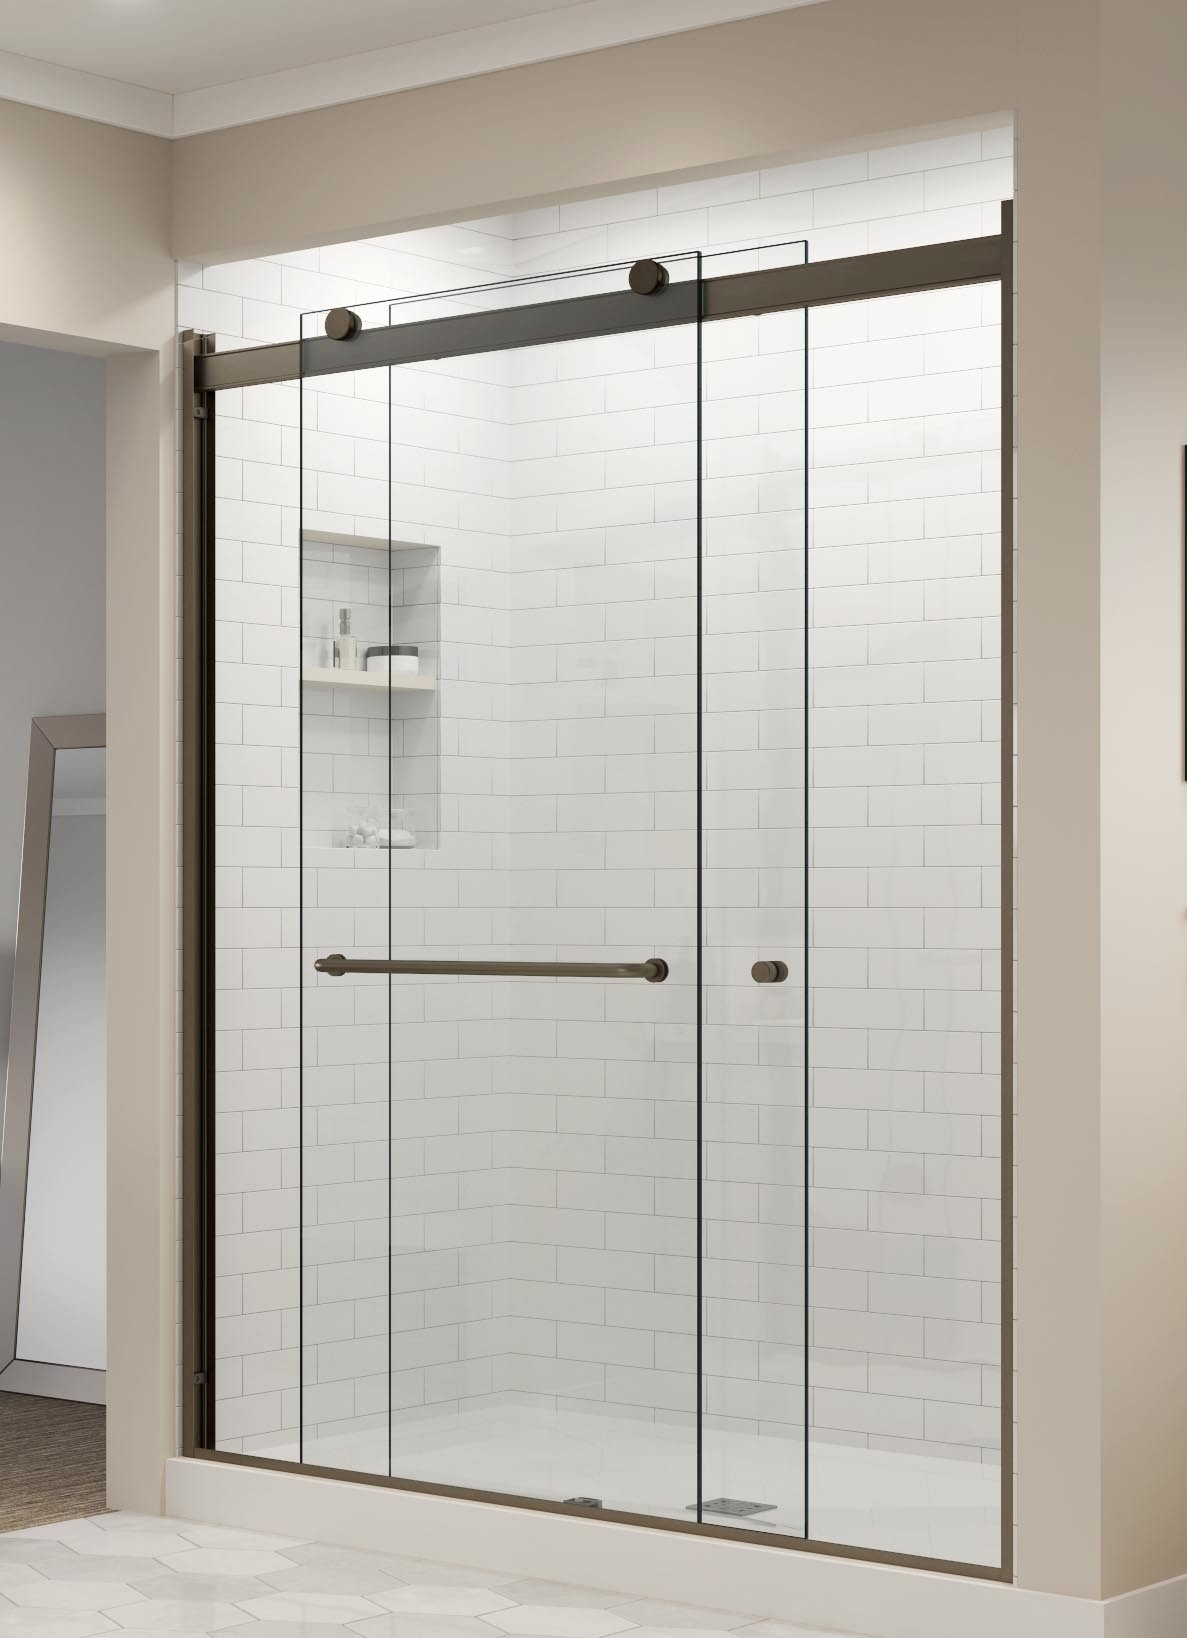 Rotolo Semi-Frameless 3/8-inch Glass Sliding… | Basco Shower Doors